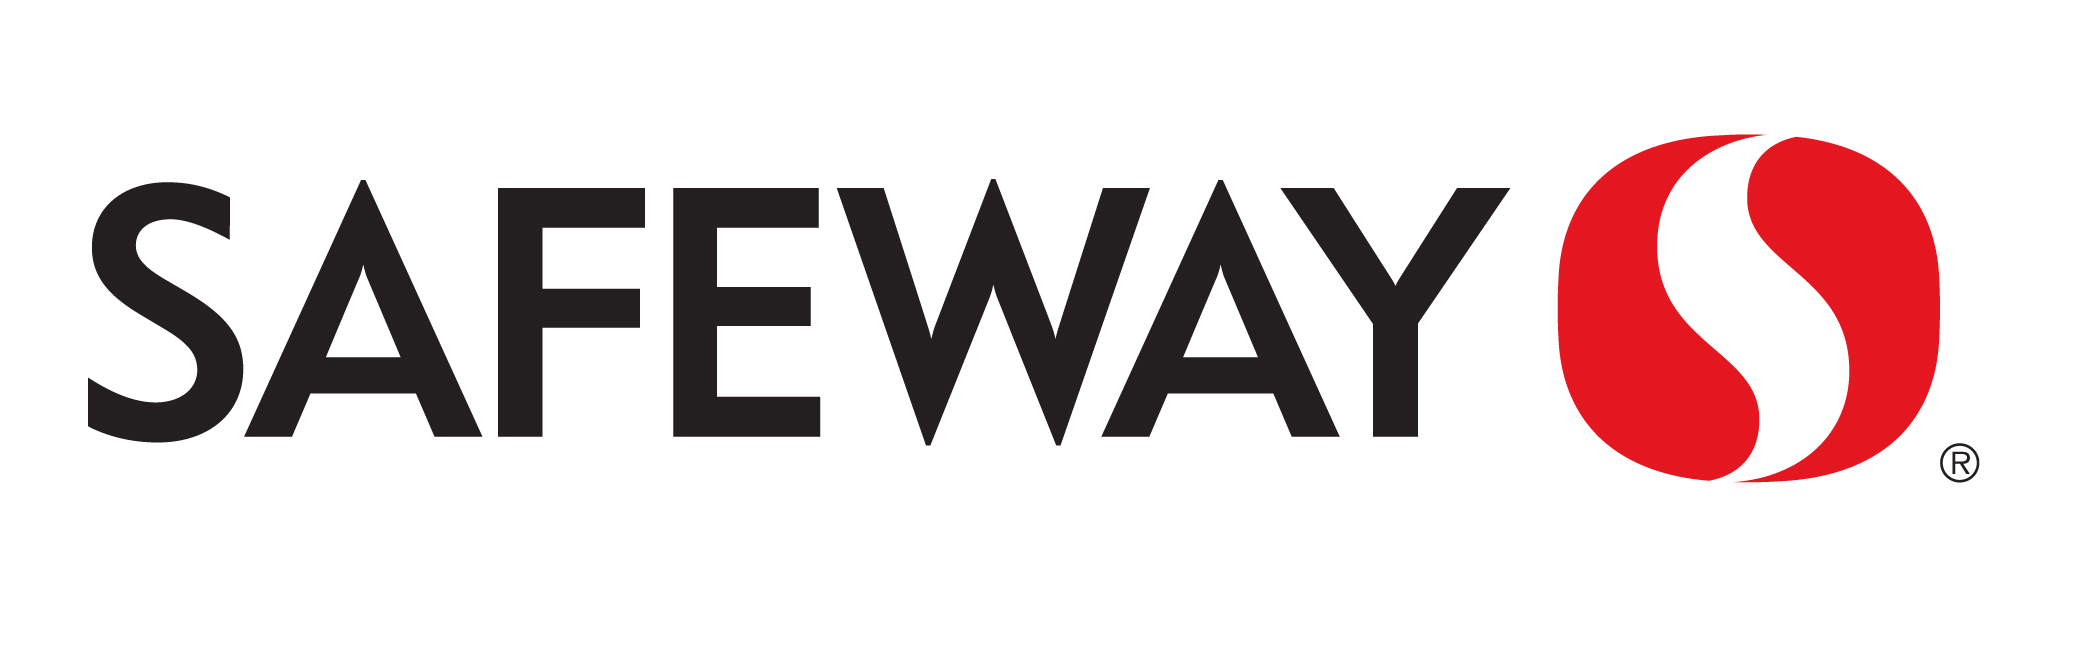 Image result for safeway logo